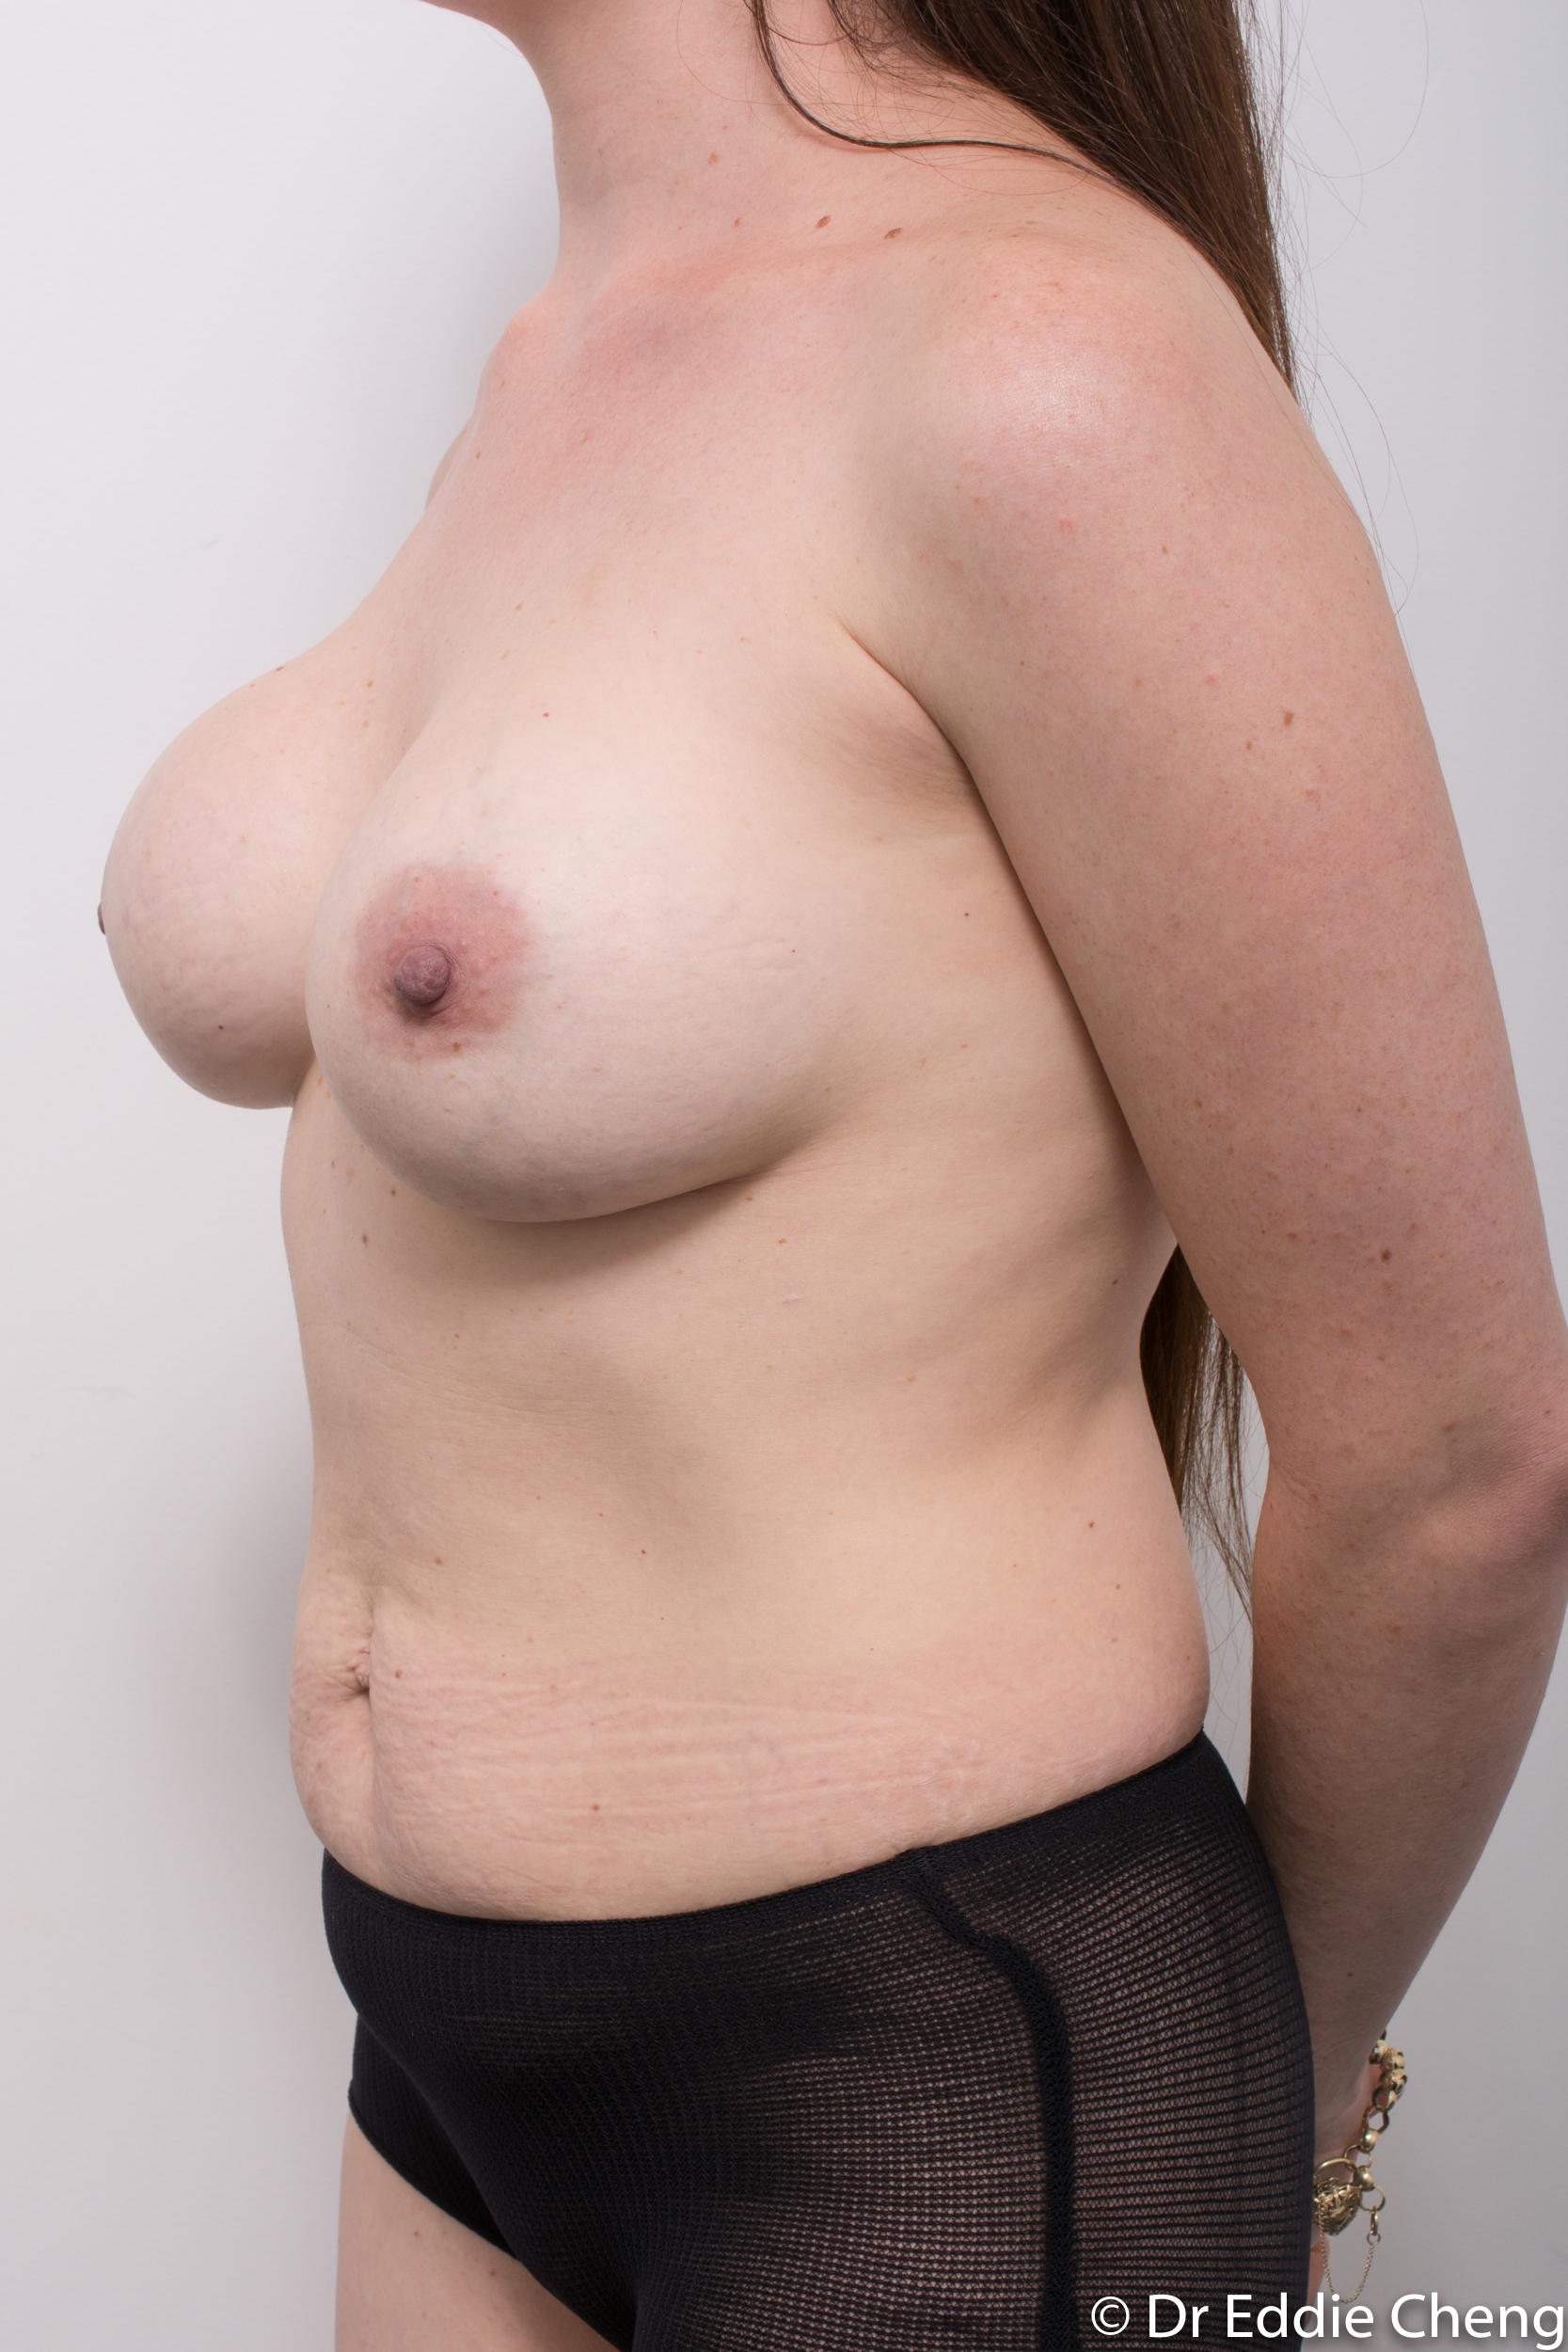 revision of breast implants dr eddie cheng brisbane-4